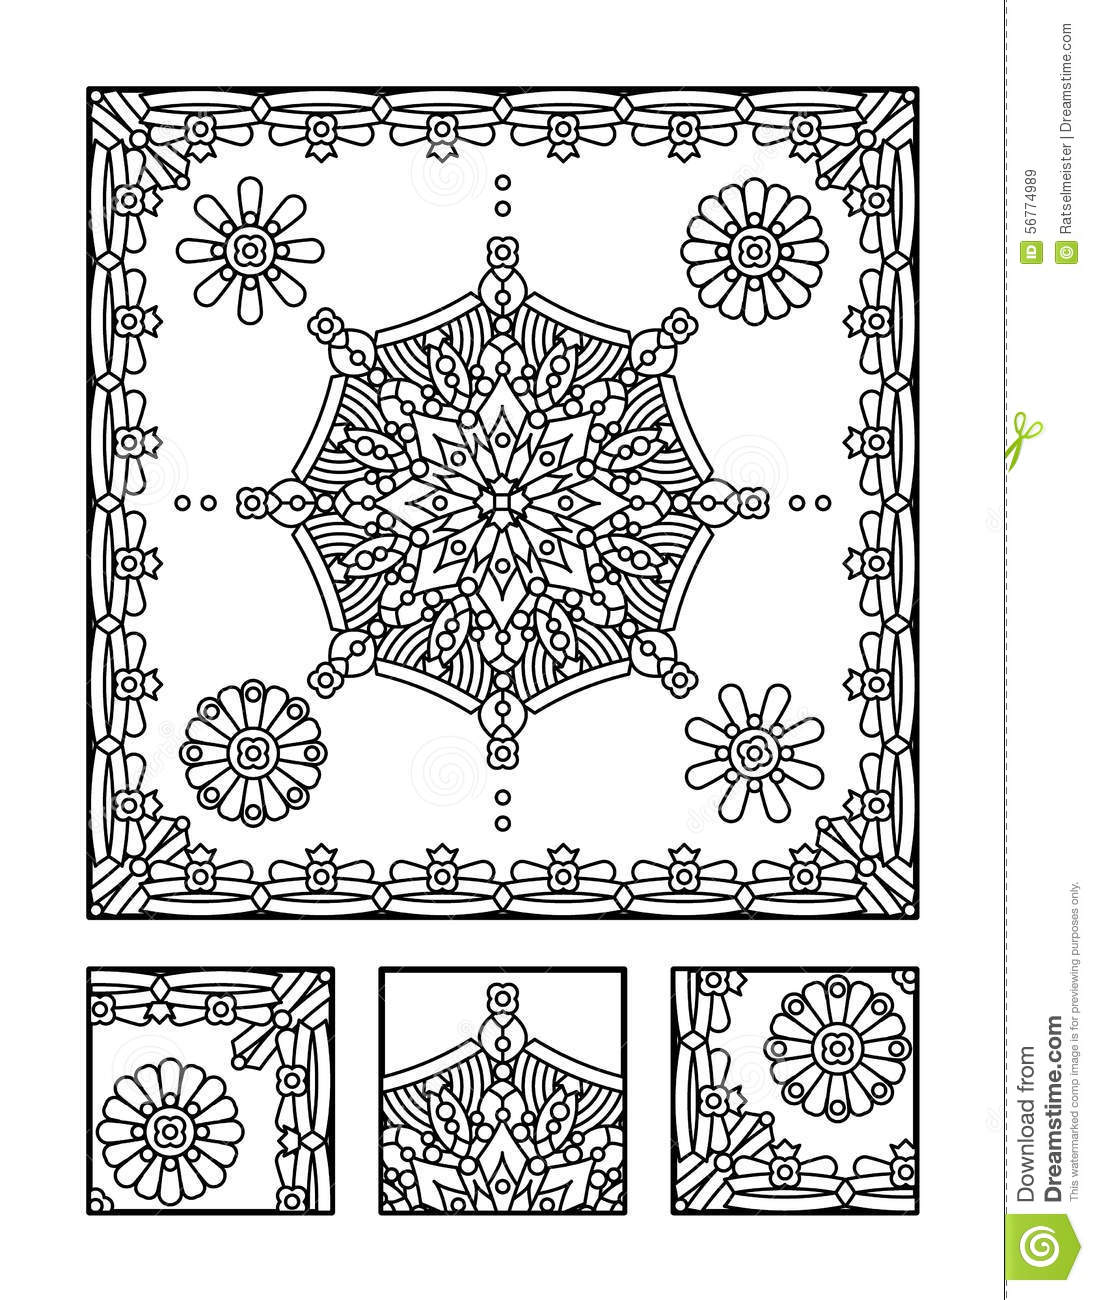 Coloring Page And Visual Puzzle For Adults Cartoon Vector